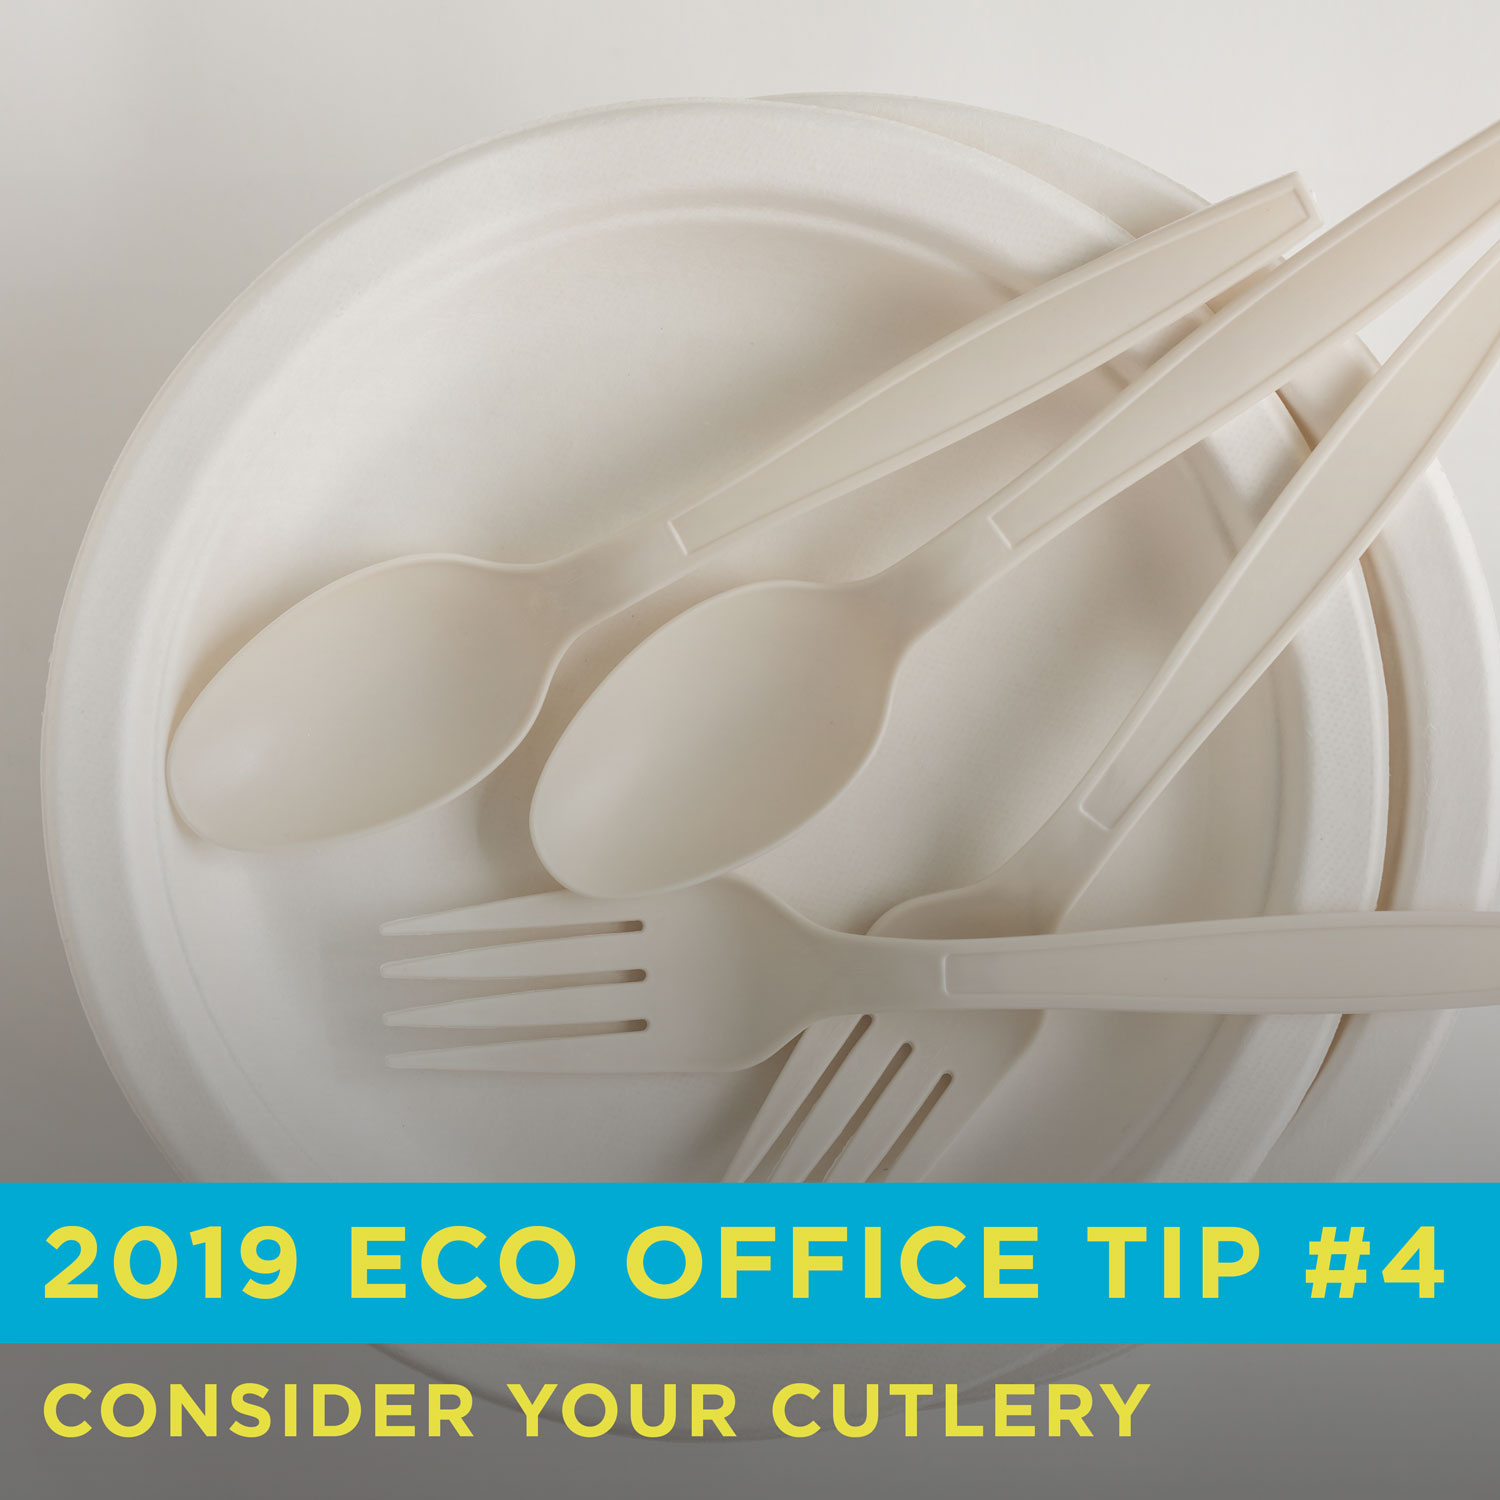 Eco Friendly Office Tip 4: Consider Your Cutlery